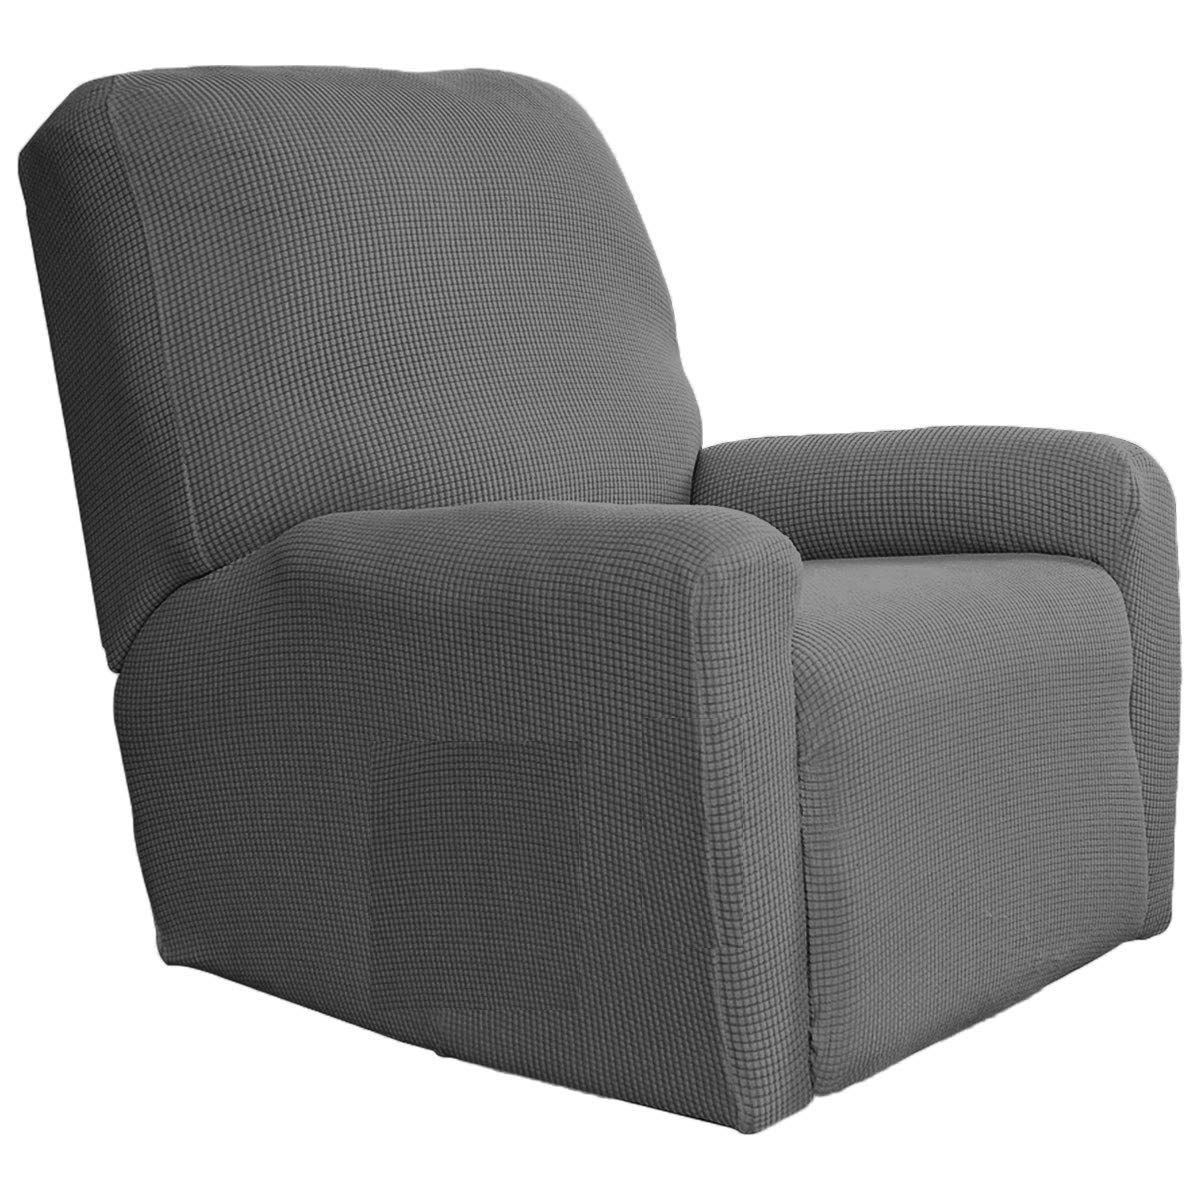 Amazon Com Fancy Collection Sure Fit Stretch Recliner Stretch Slipcover Blue New Home Kitchen Slipcovers Furniture Protectors Sofa Covers